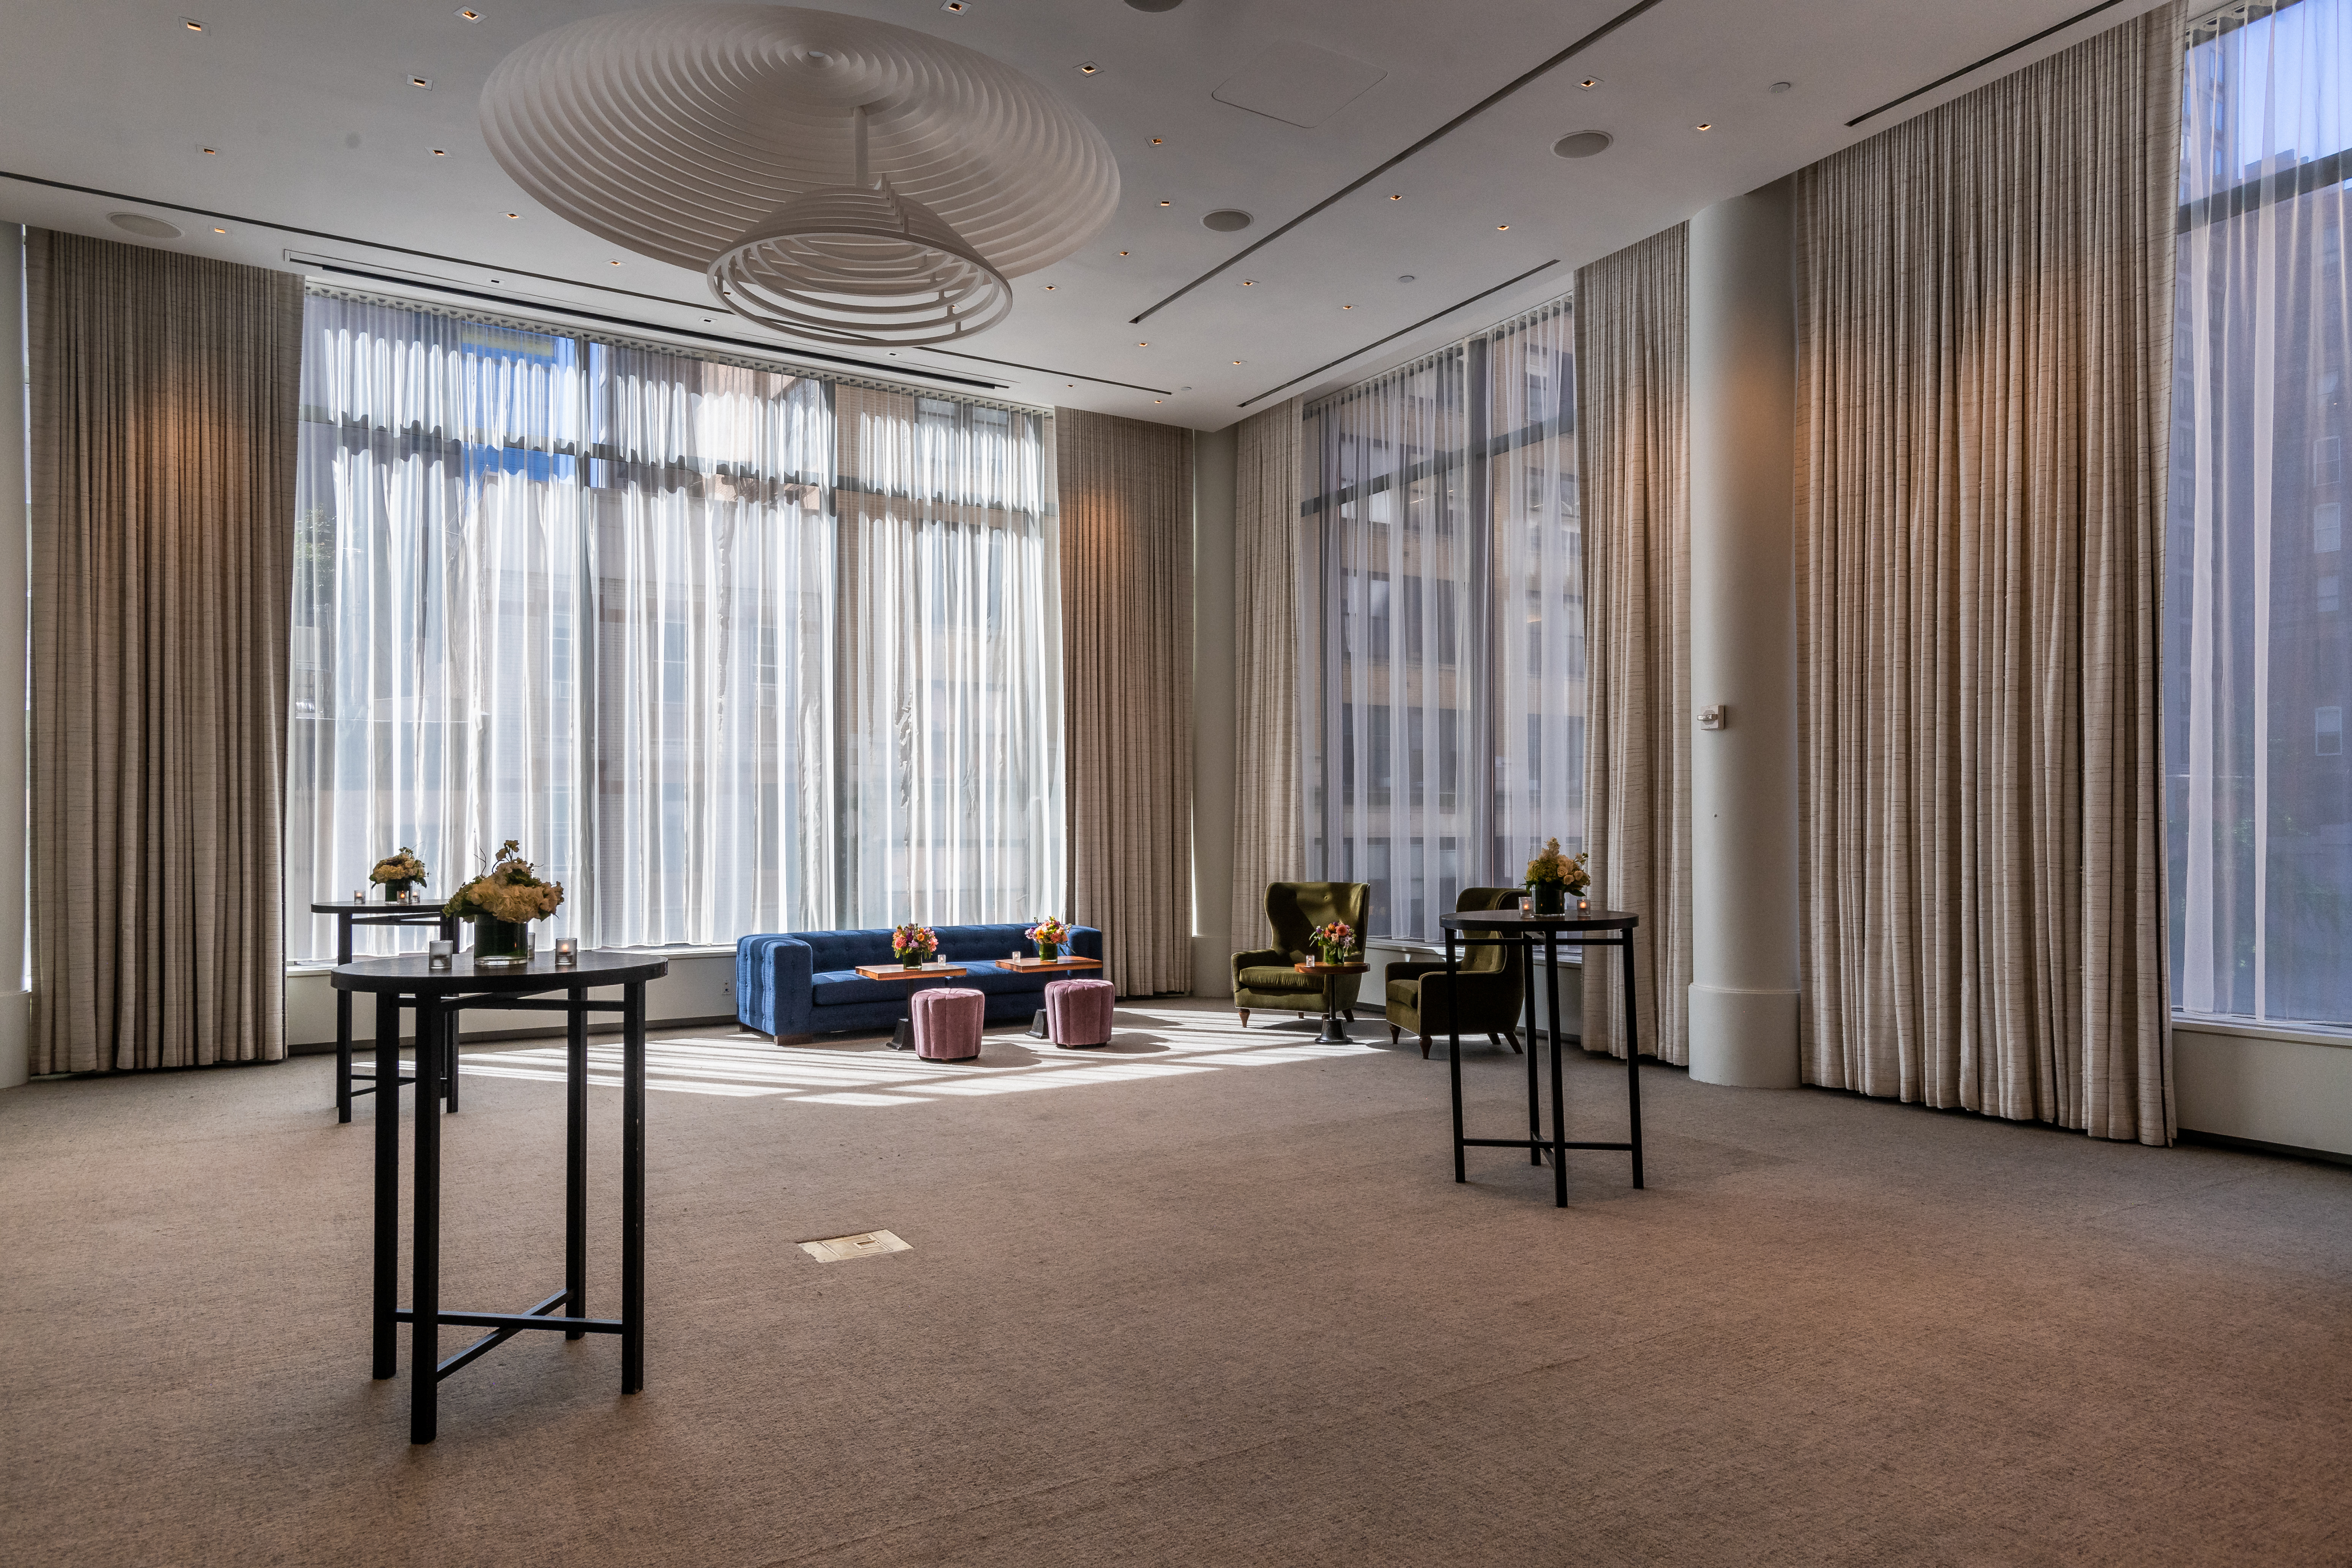 Looking to create a relaxing environment, designer Reza Nouranian took inspiration from the light and natural tones found in the hotel's lobby.